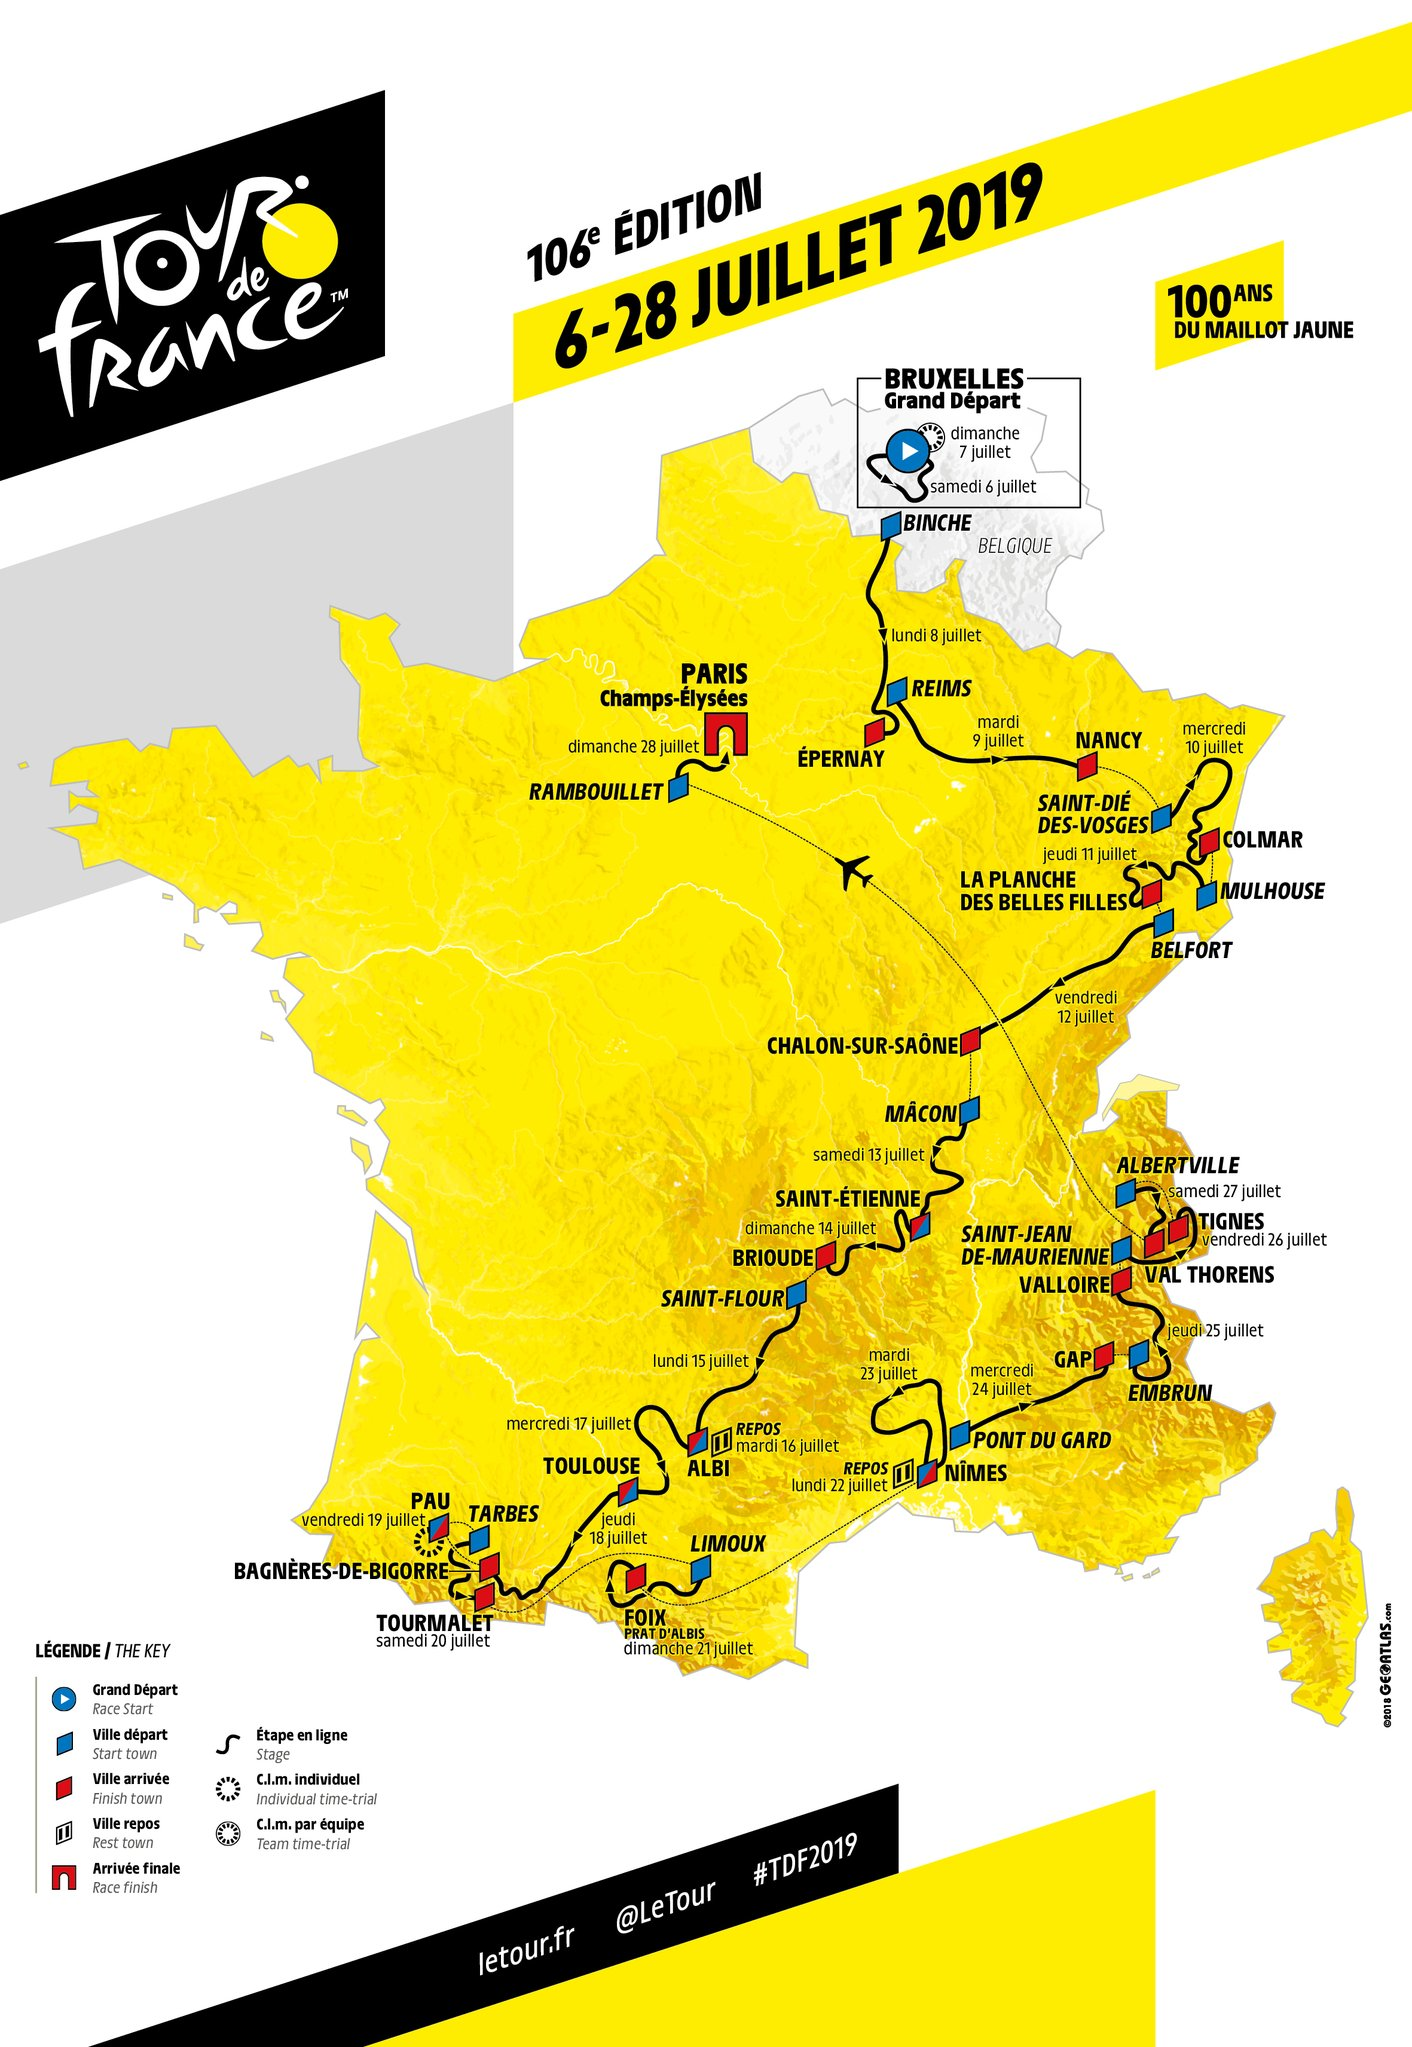 Tour de France cycliste 2019 à Albi